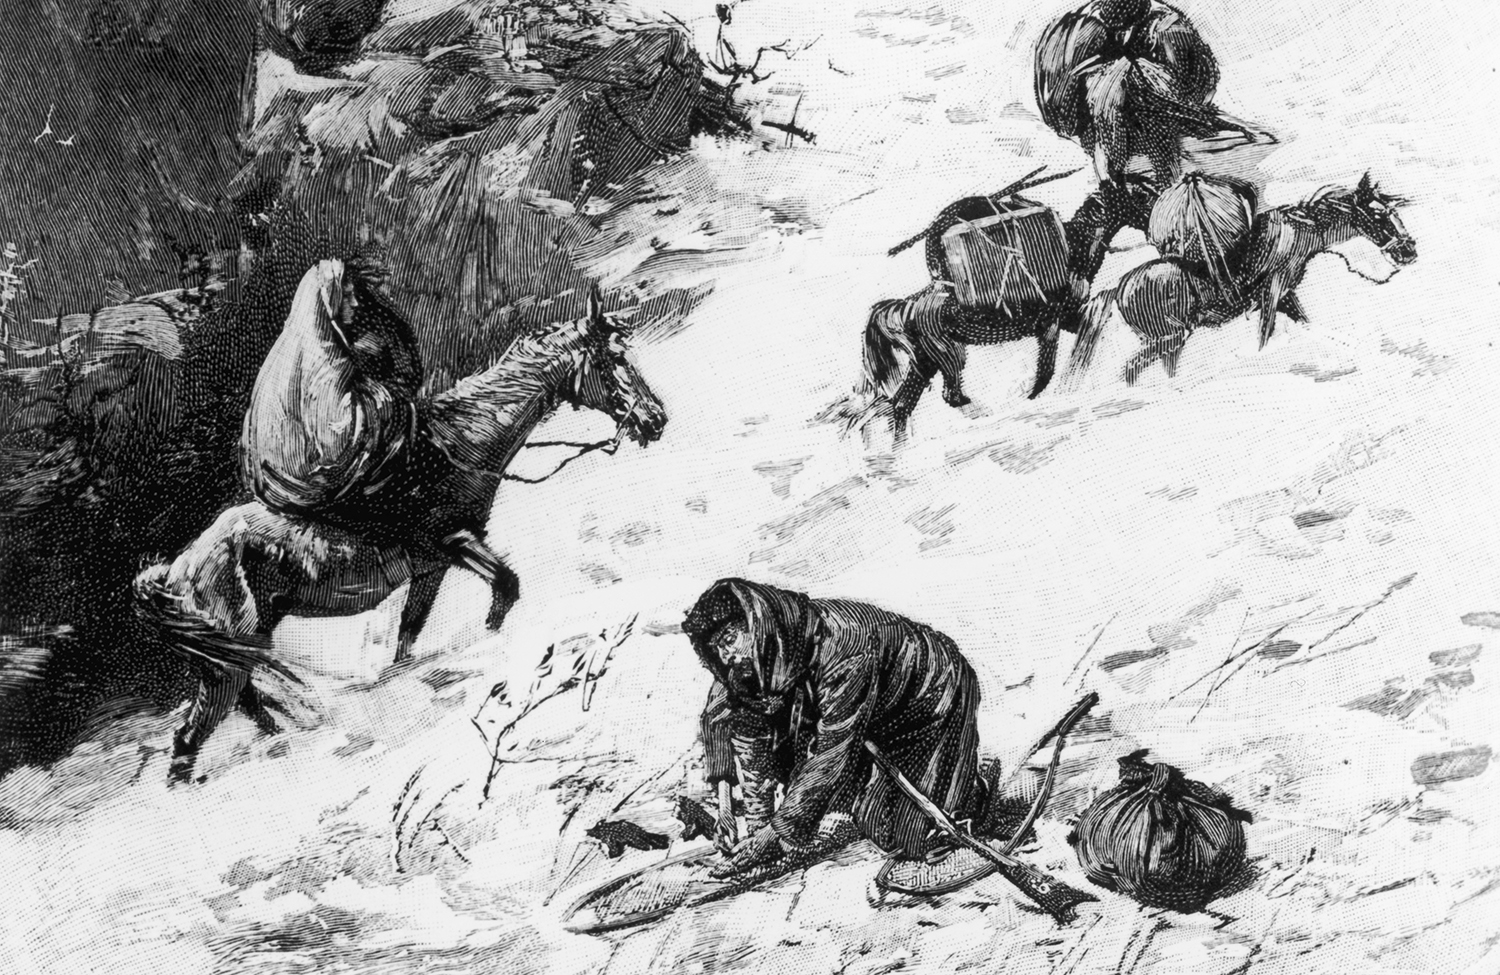 the mistakes and mishaps of the donner party Donner party or donner reed party was an expedition headed by american george donner and james f reed back in may 1846, they both had set themselves off to california in a wagon train it is considered one of the most tragically famous expeditions in californian history and western us migration.